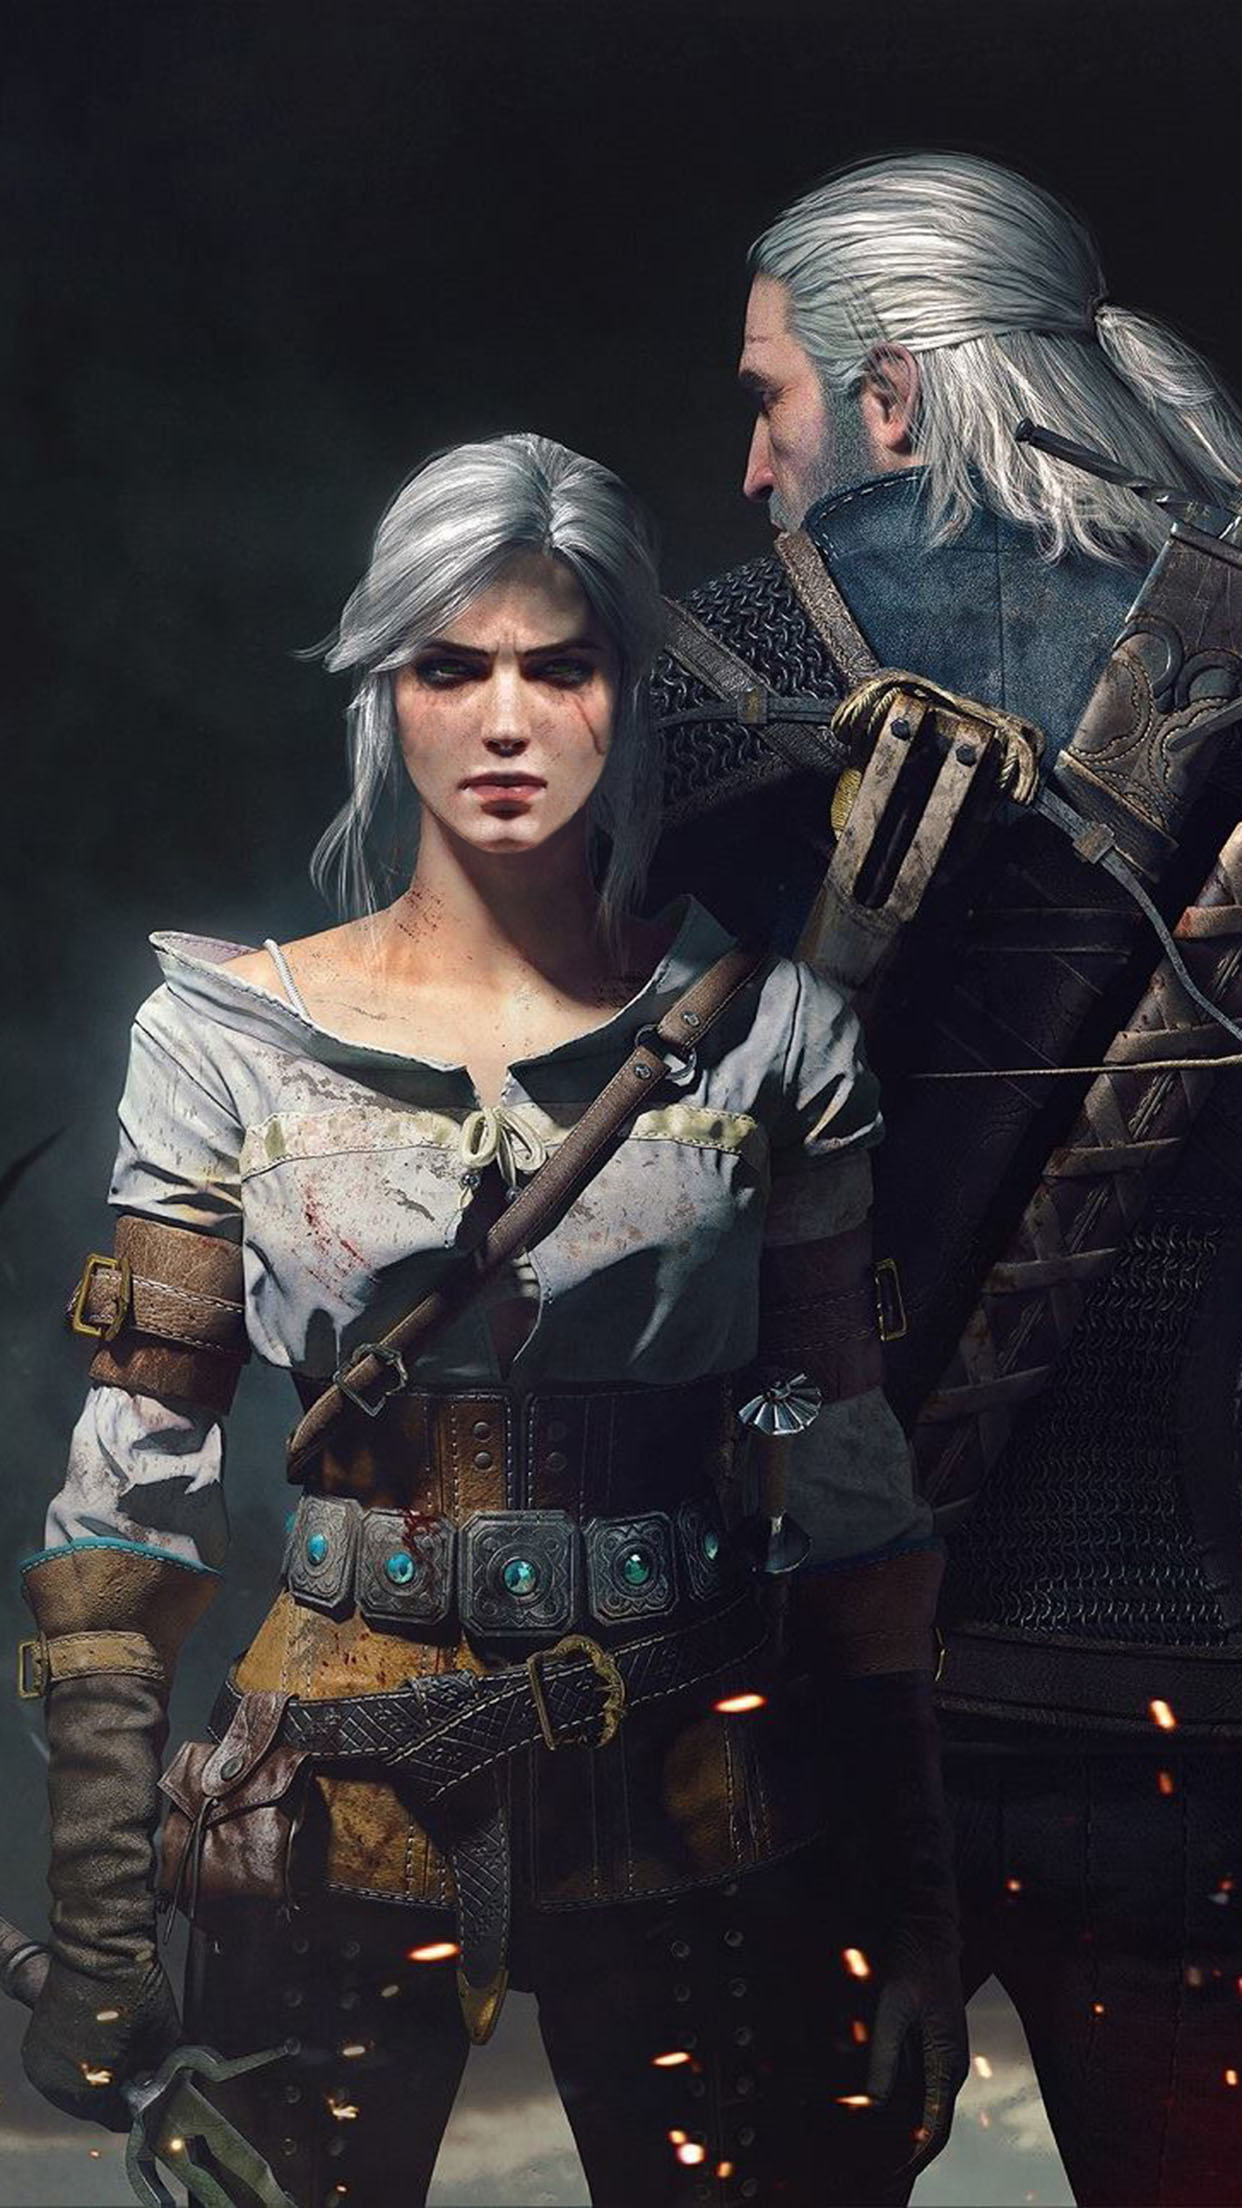 The Witcher 3 Wild Hunt The Witcher 3 2 3Wallpapers iPhone Parallax The Witcher 3: Wild Hunt (2)